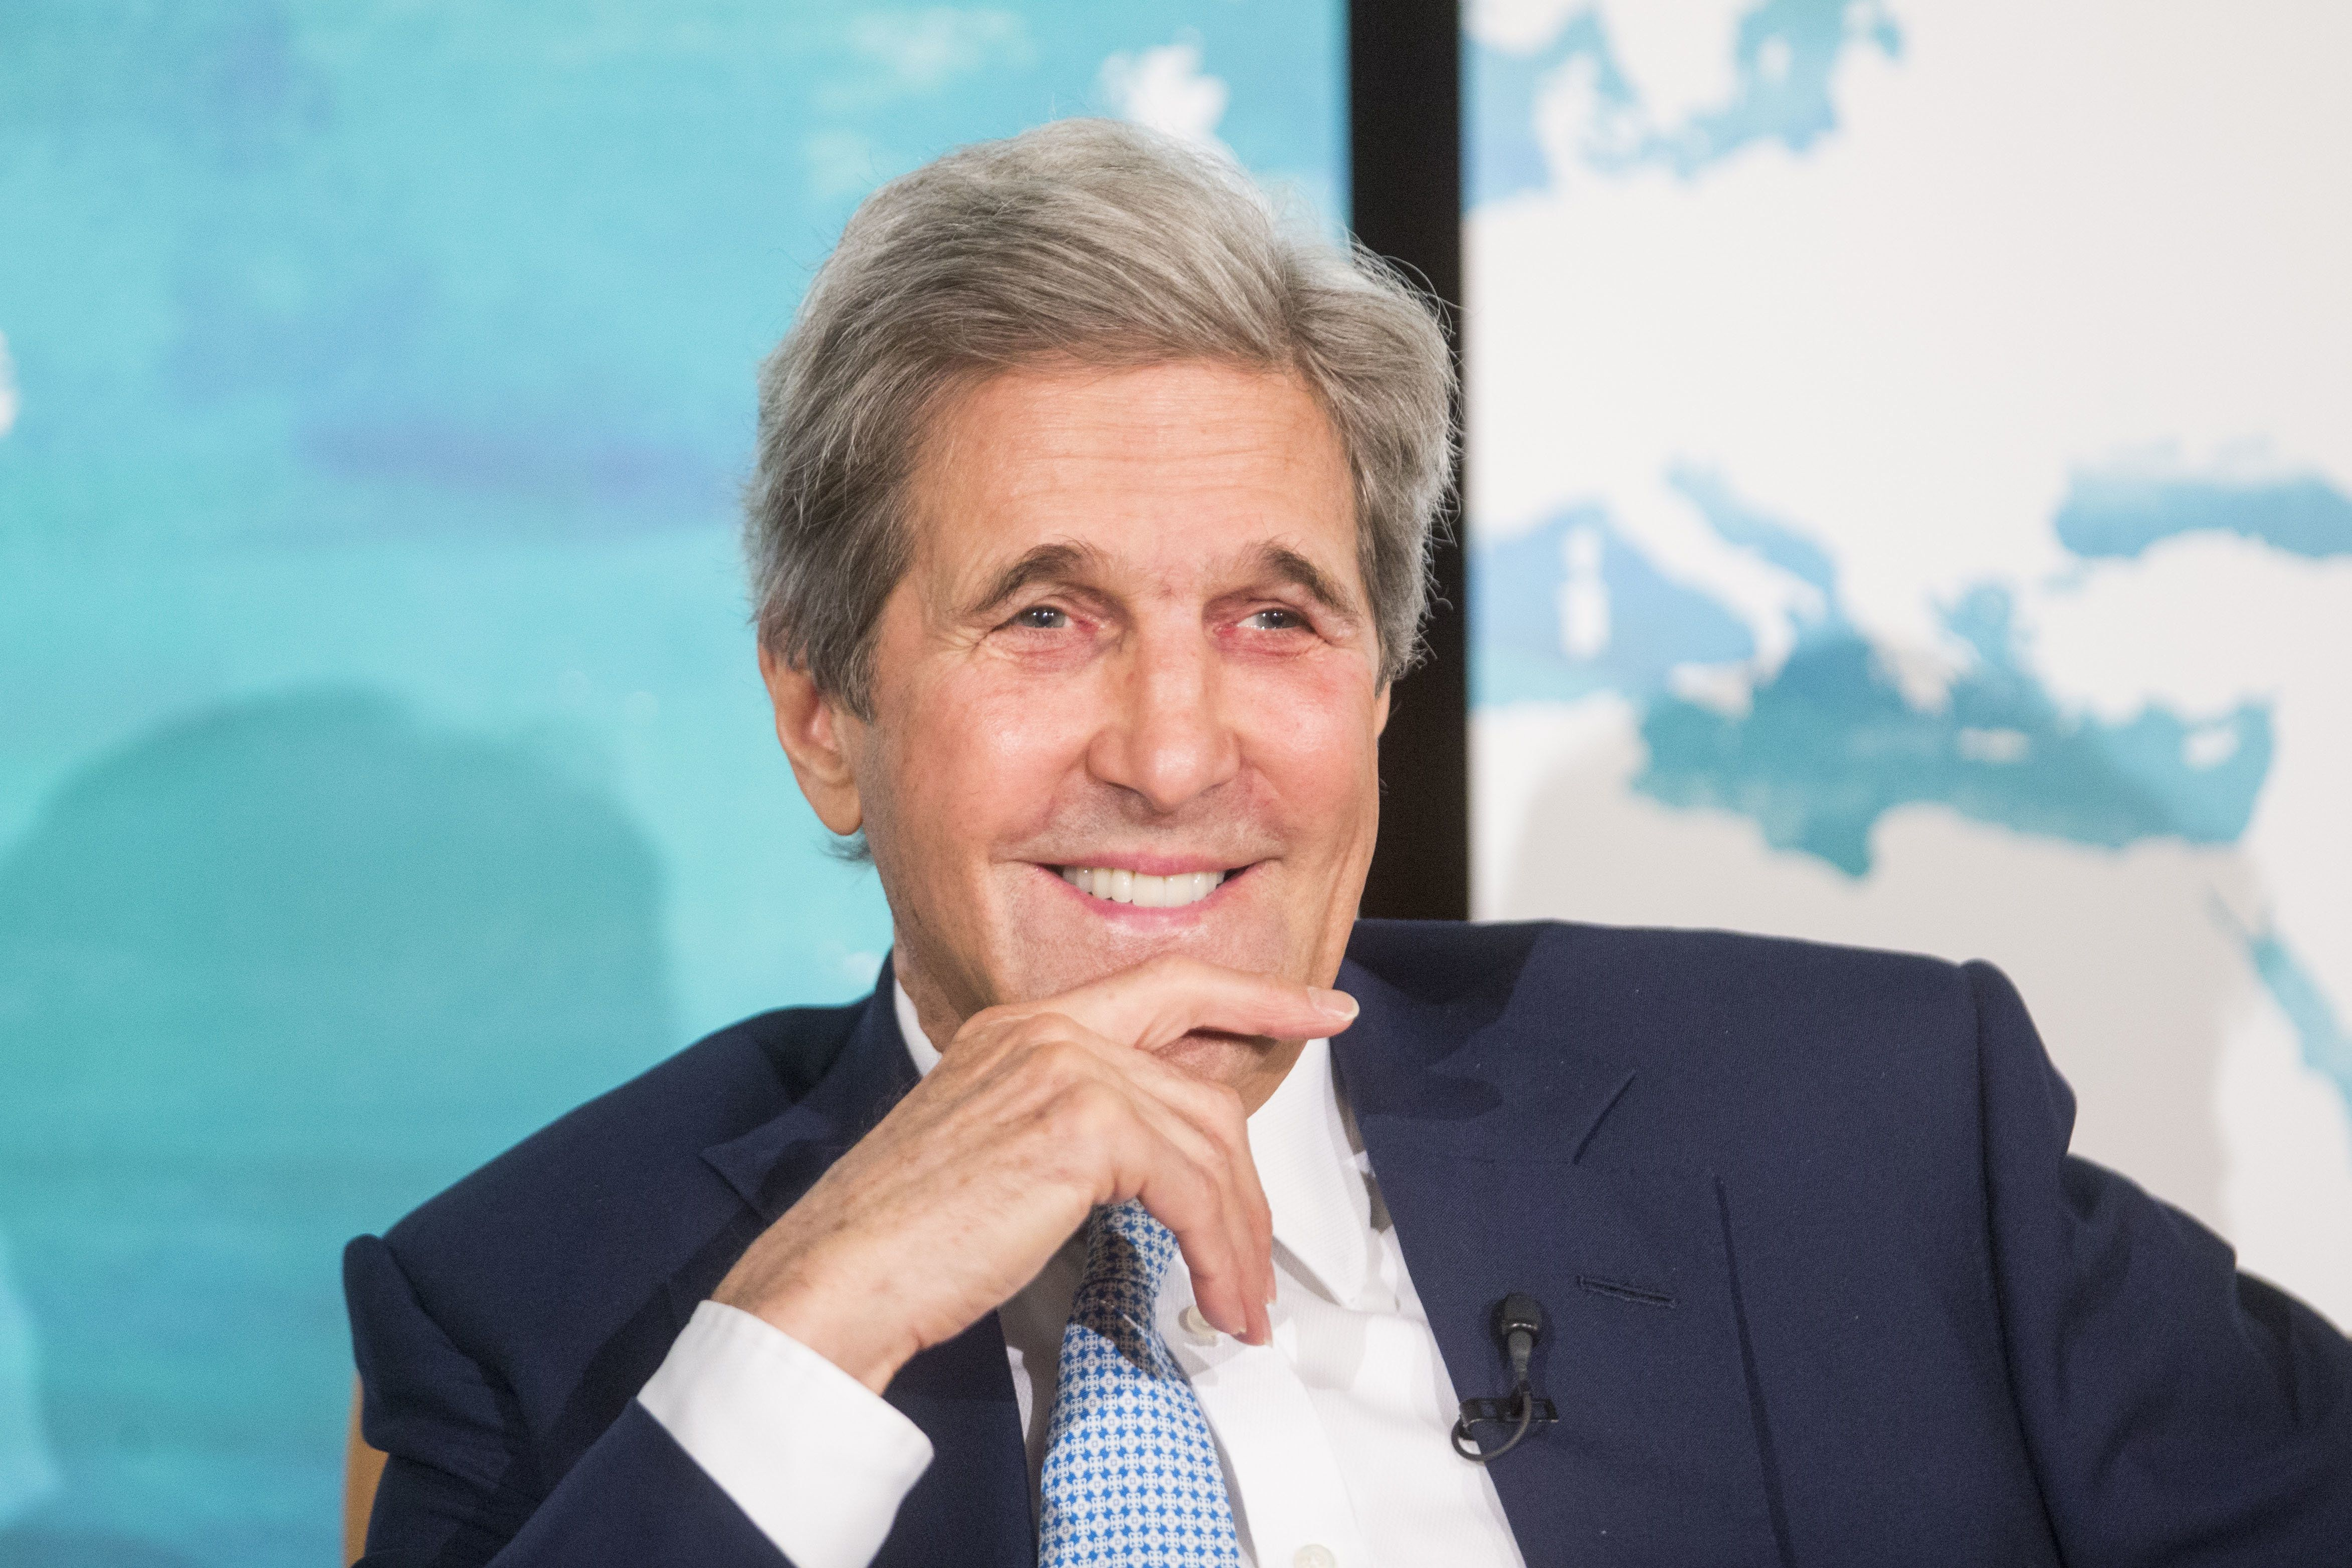 John Kerry, former U.S. Secretary of State, smiles during the International Mayors Climate Summit in Boston, Massachusetts, U.S., on Thursday, June 7, 2018. The summit focuses on the best practices and steps city leaders can take to address climate change globally and in their own communities. Photographer: Scott Eisen/Bloomberg via Getty Images